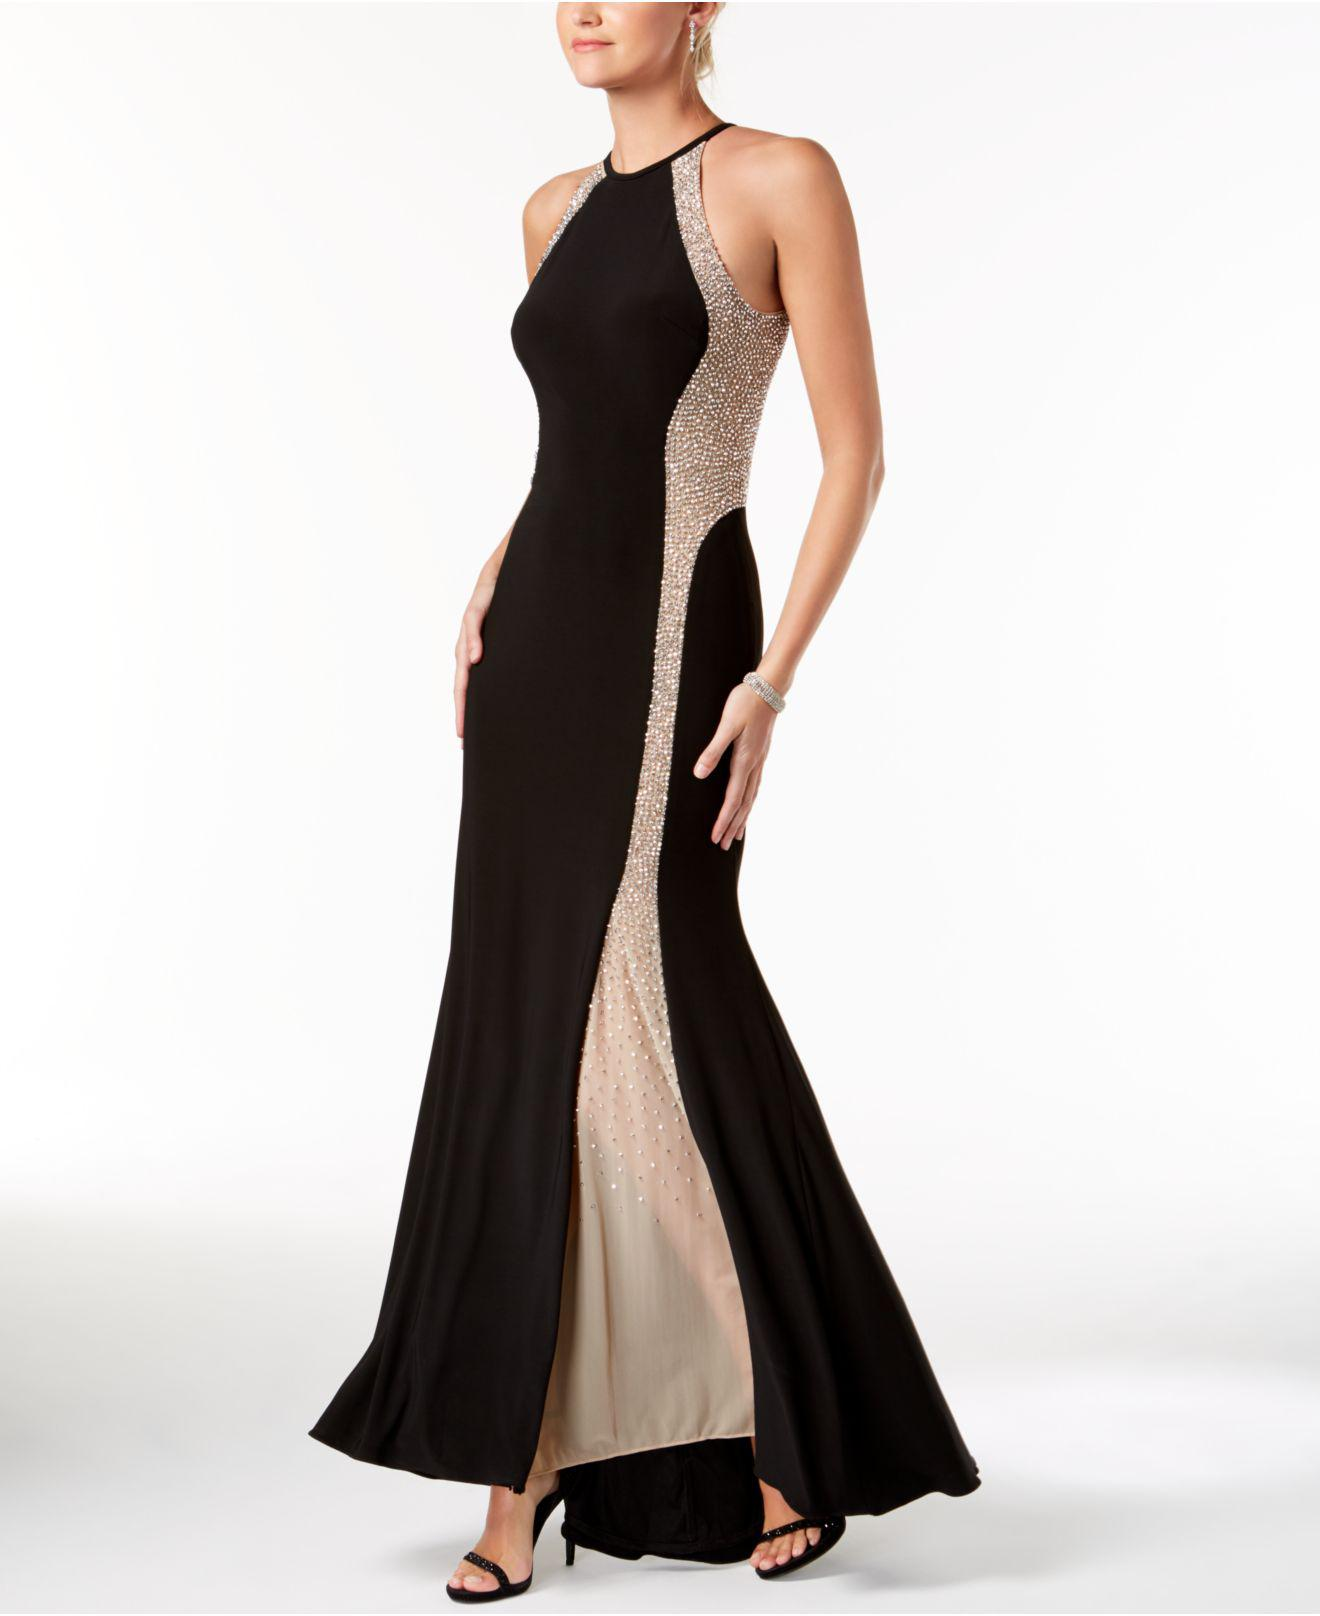 Lyst - Xscape Caviar-beaded Illusion Gown in Black